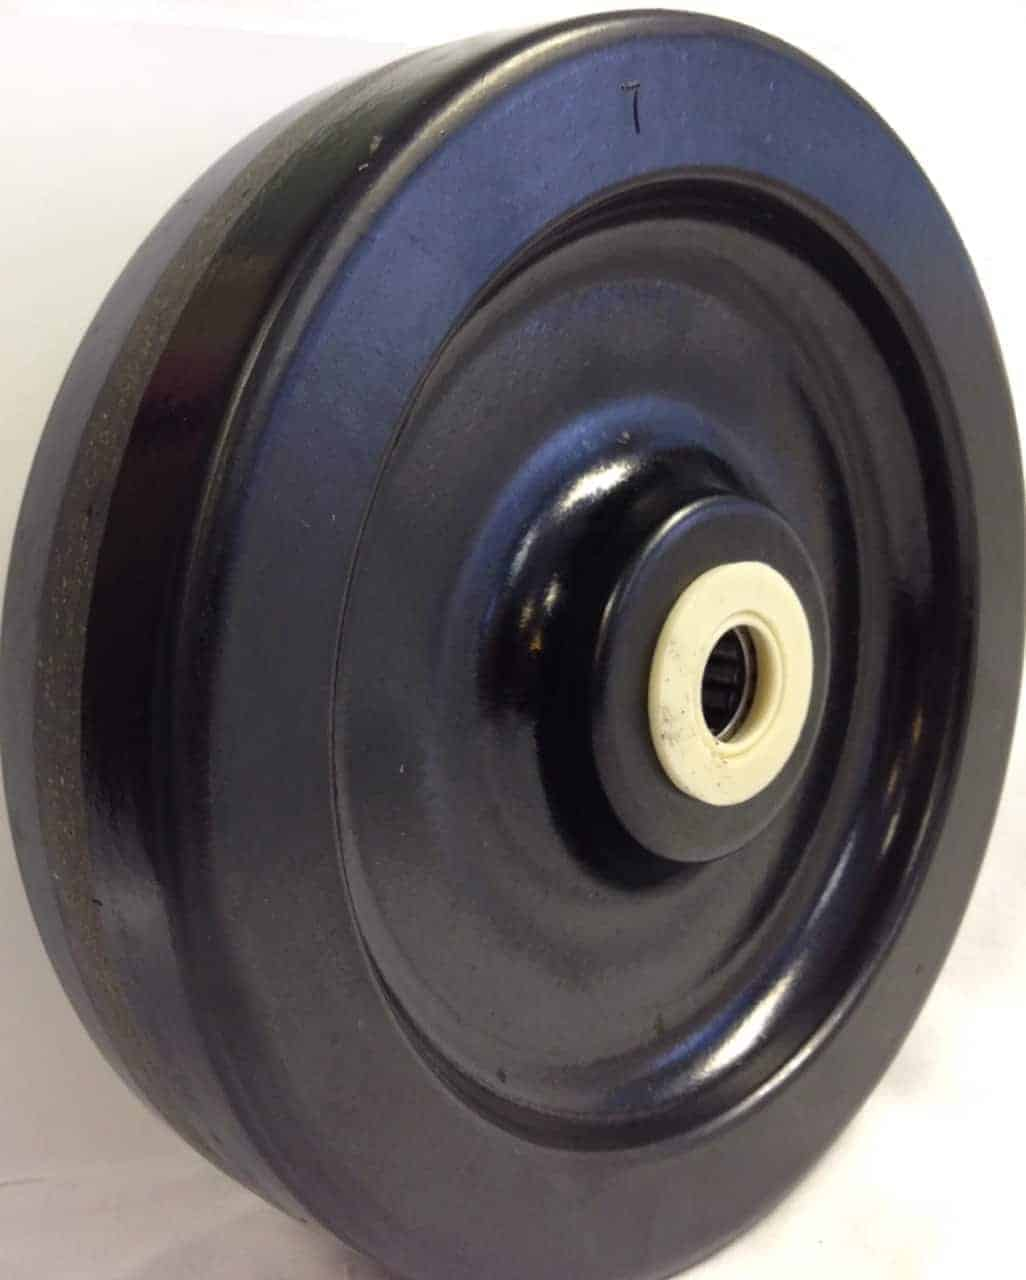 10″ Phenolic Wheel With 3-1/4 Hub 1-1/4″ Roller Bearing 2900 Lbs Capacity